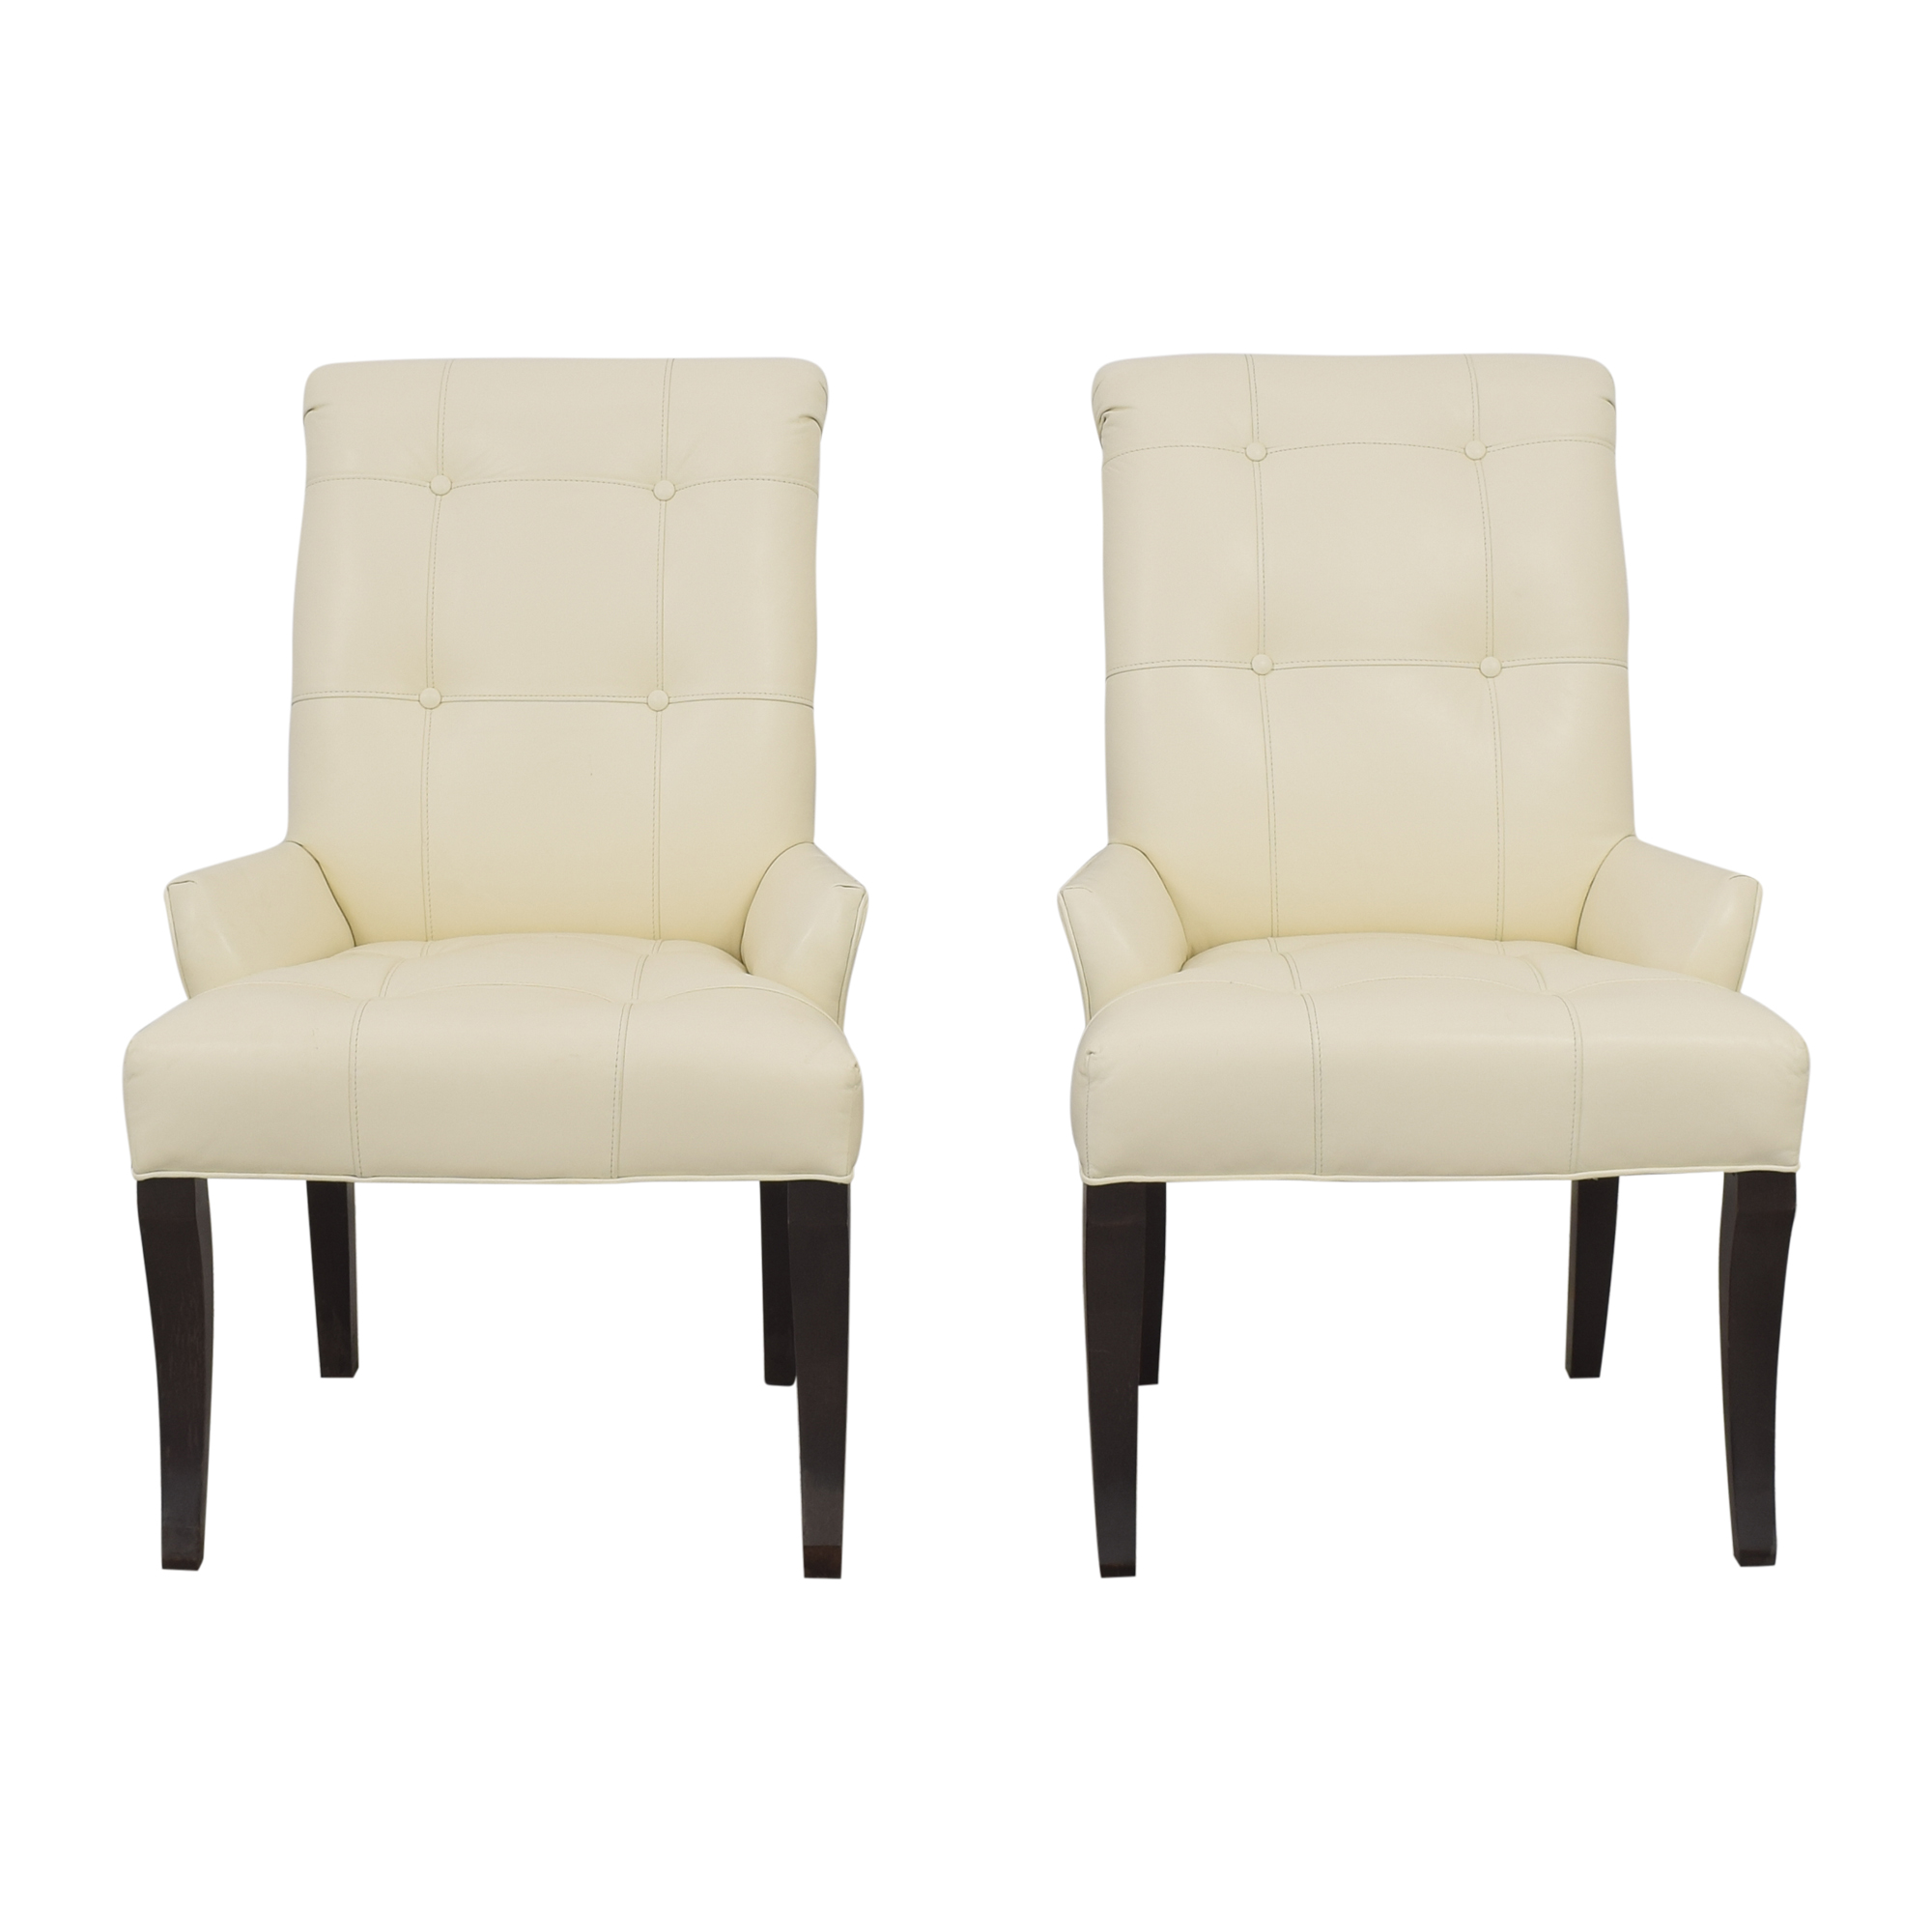 Ethan Allen Ethan Allen Verlaine Dining Armchairs coupon